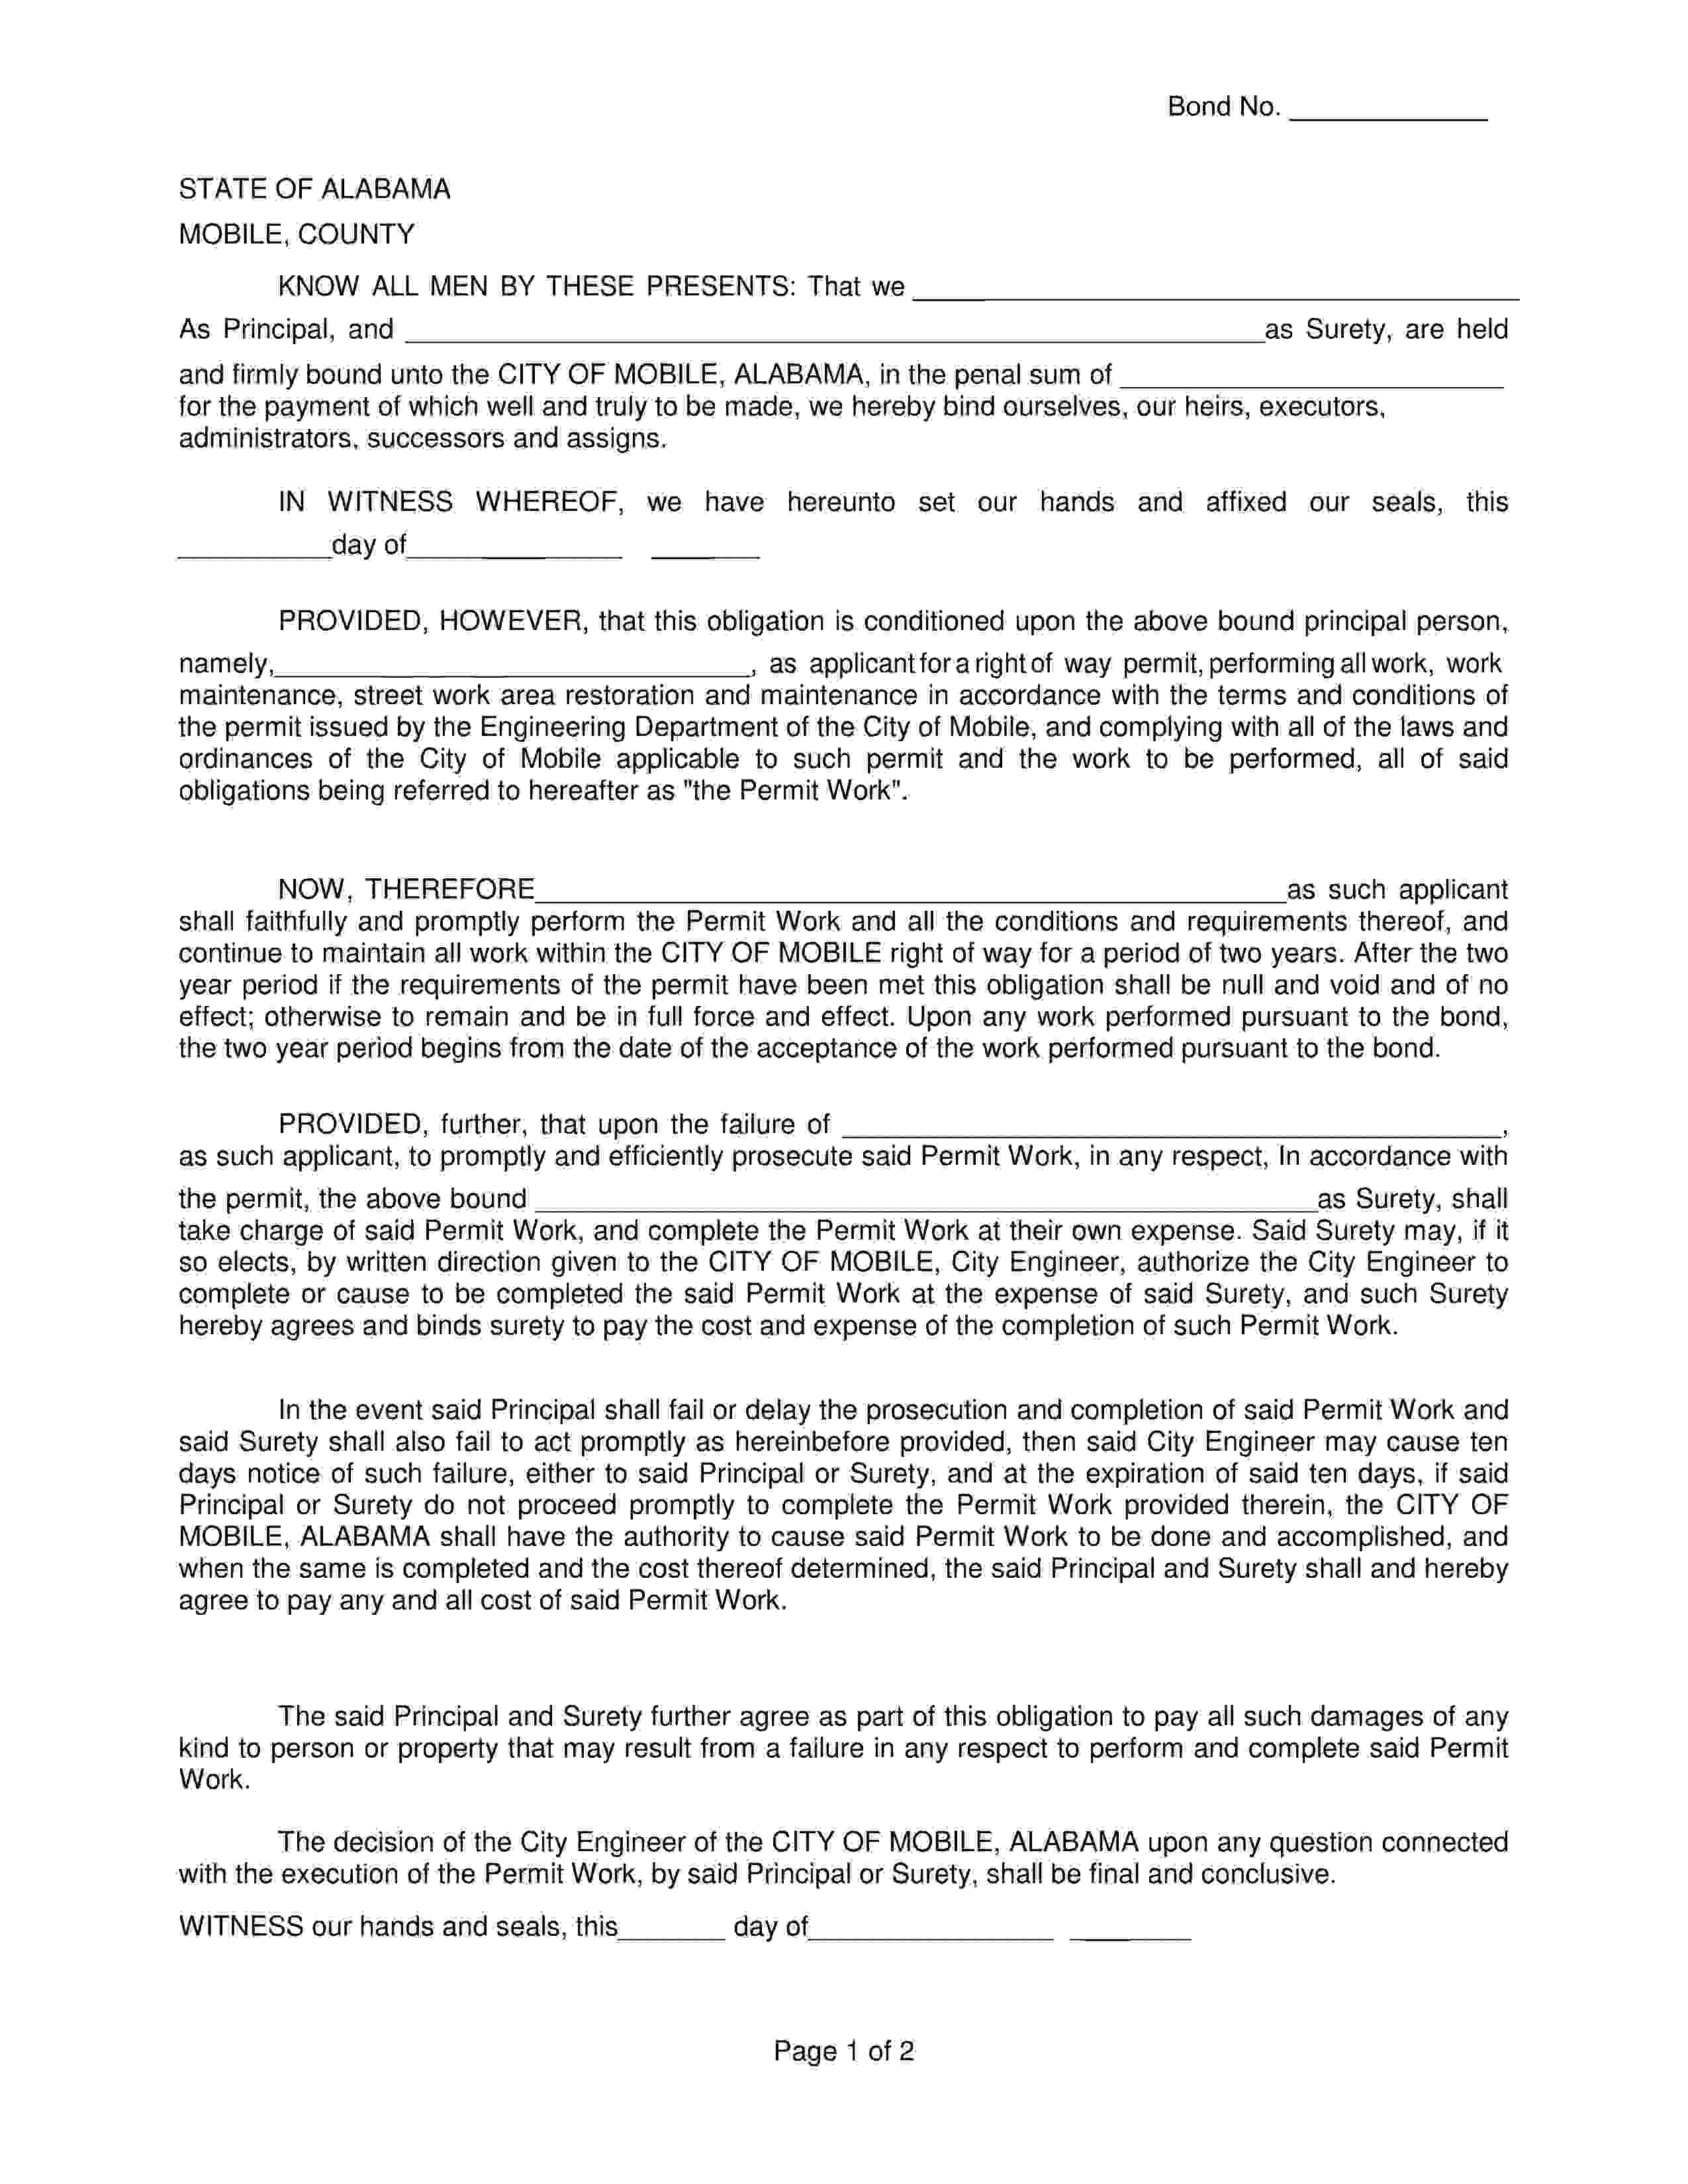 City of Mobile Urban Development Department Mobile - City Right of Way Permit Bond sample image